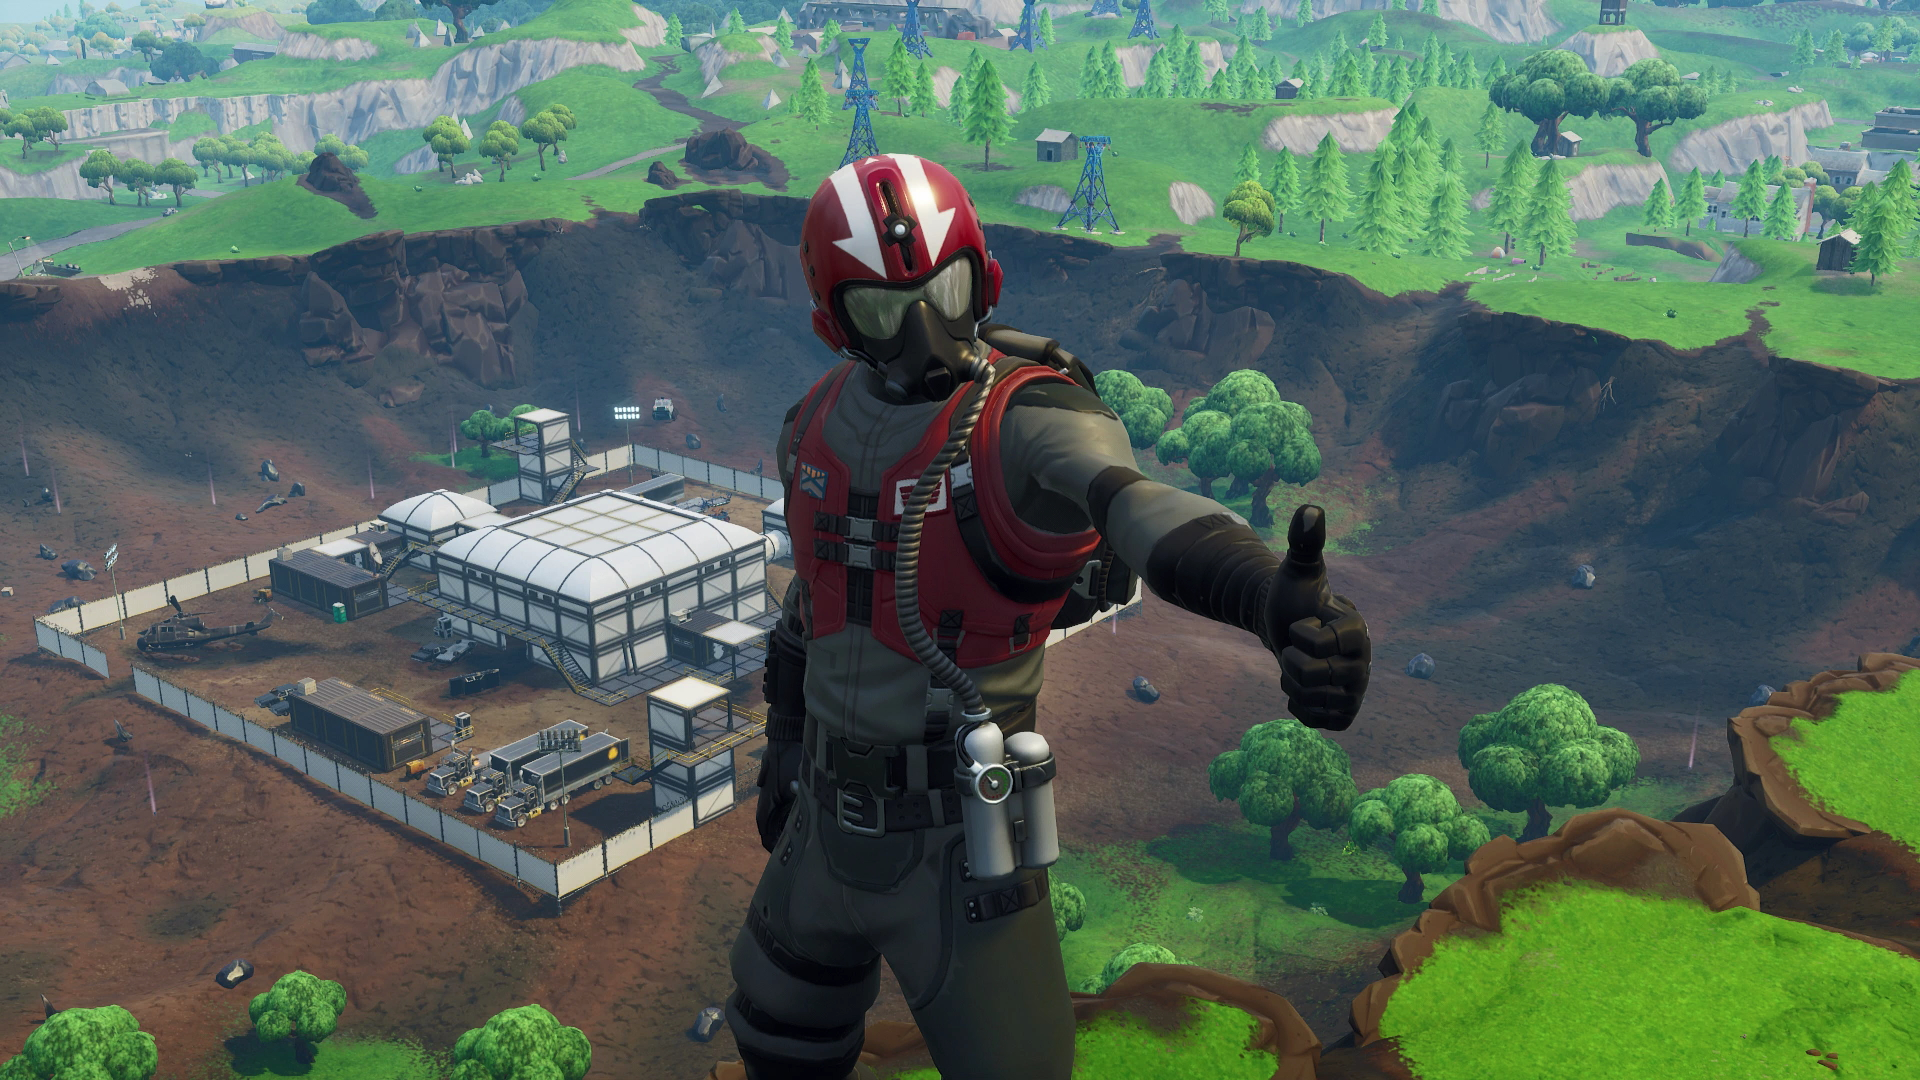 Best Fortnite keybinds for building quick, easy weapon